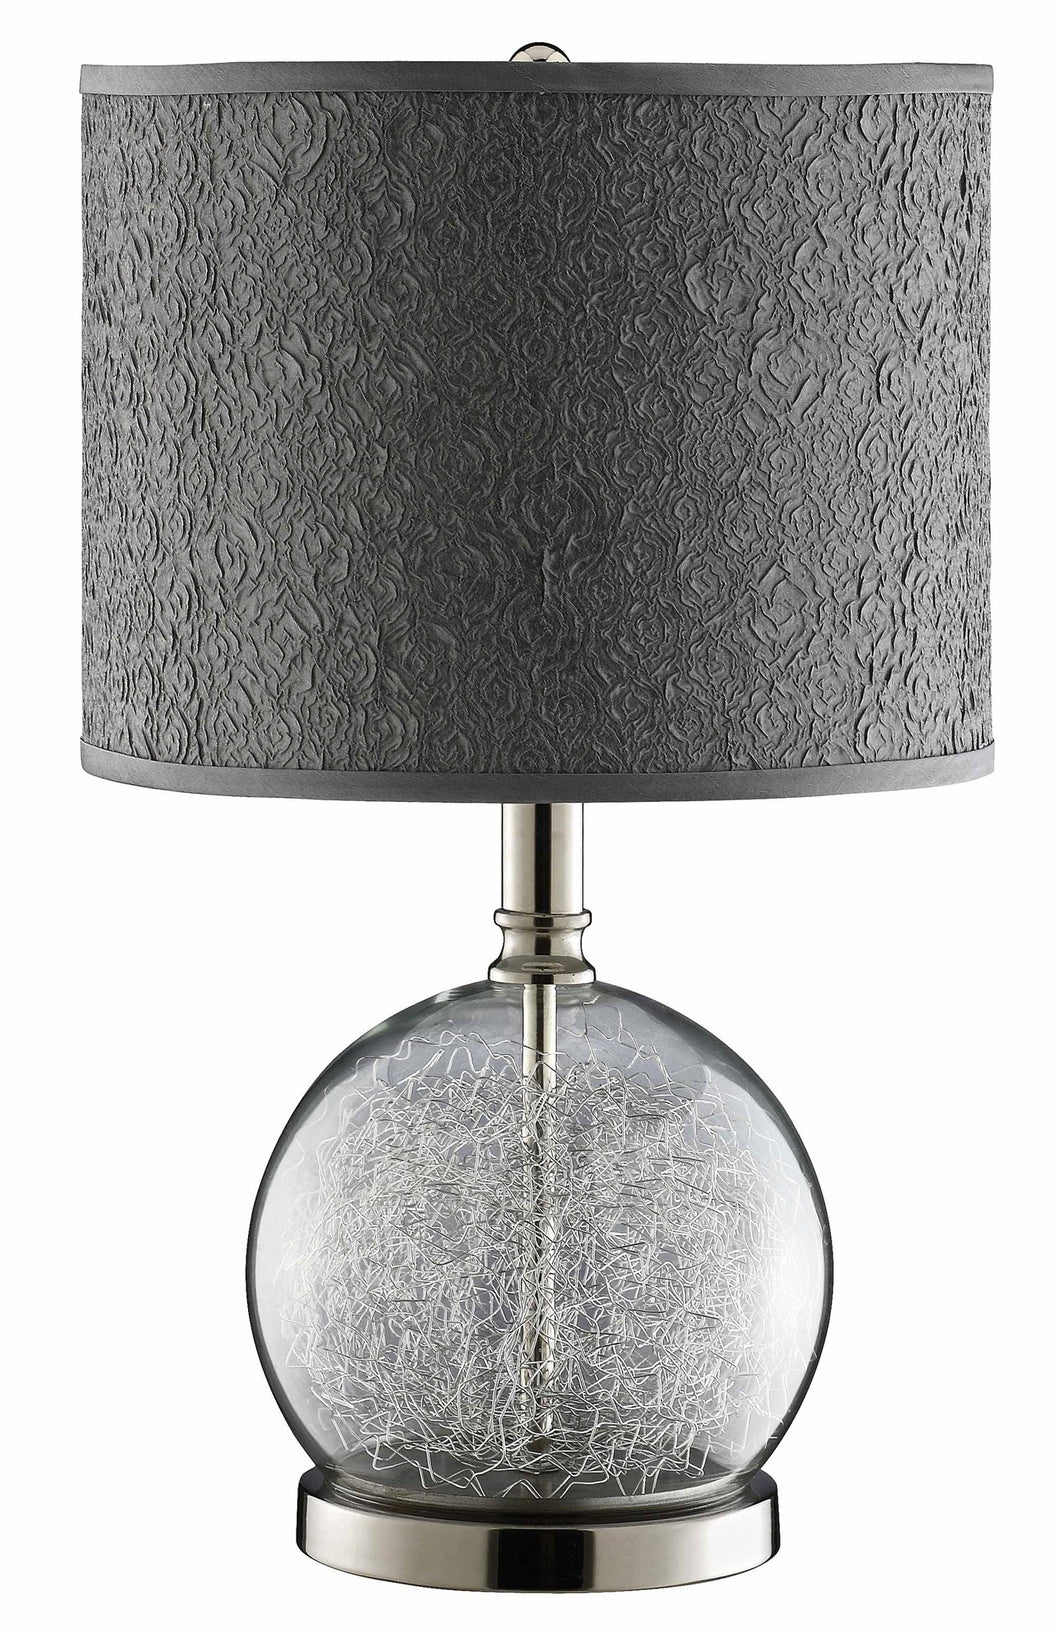 STEIN WORLD - Filament Table Lamp